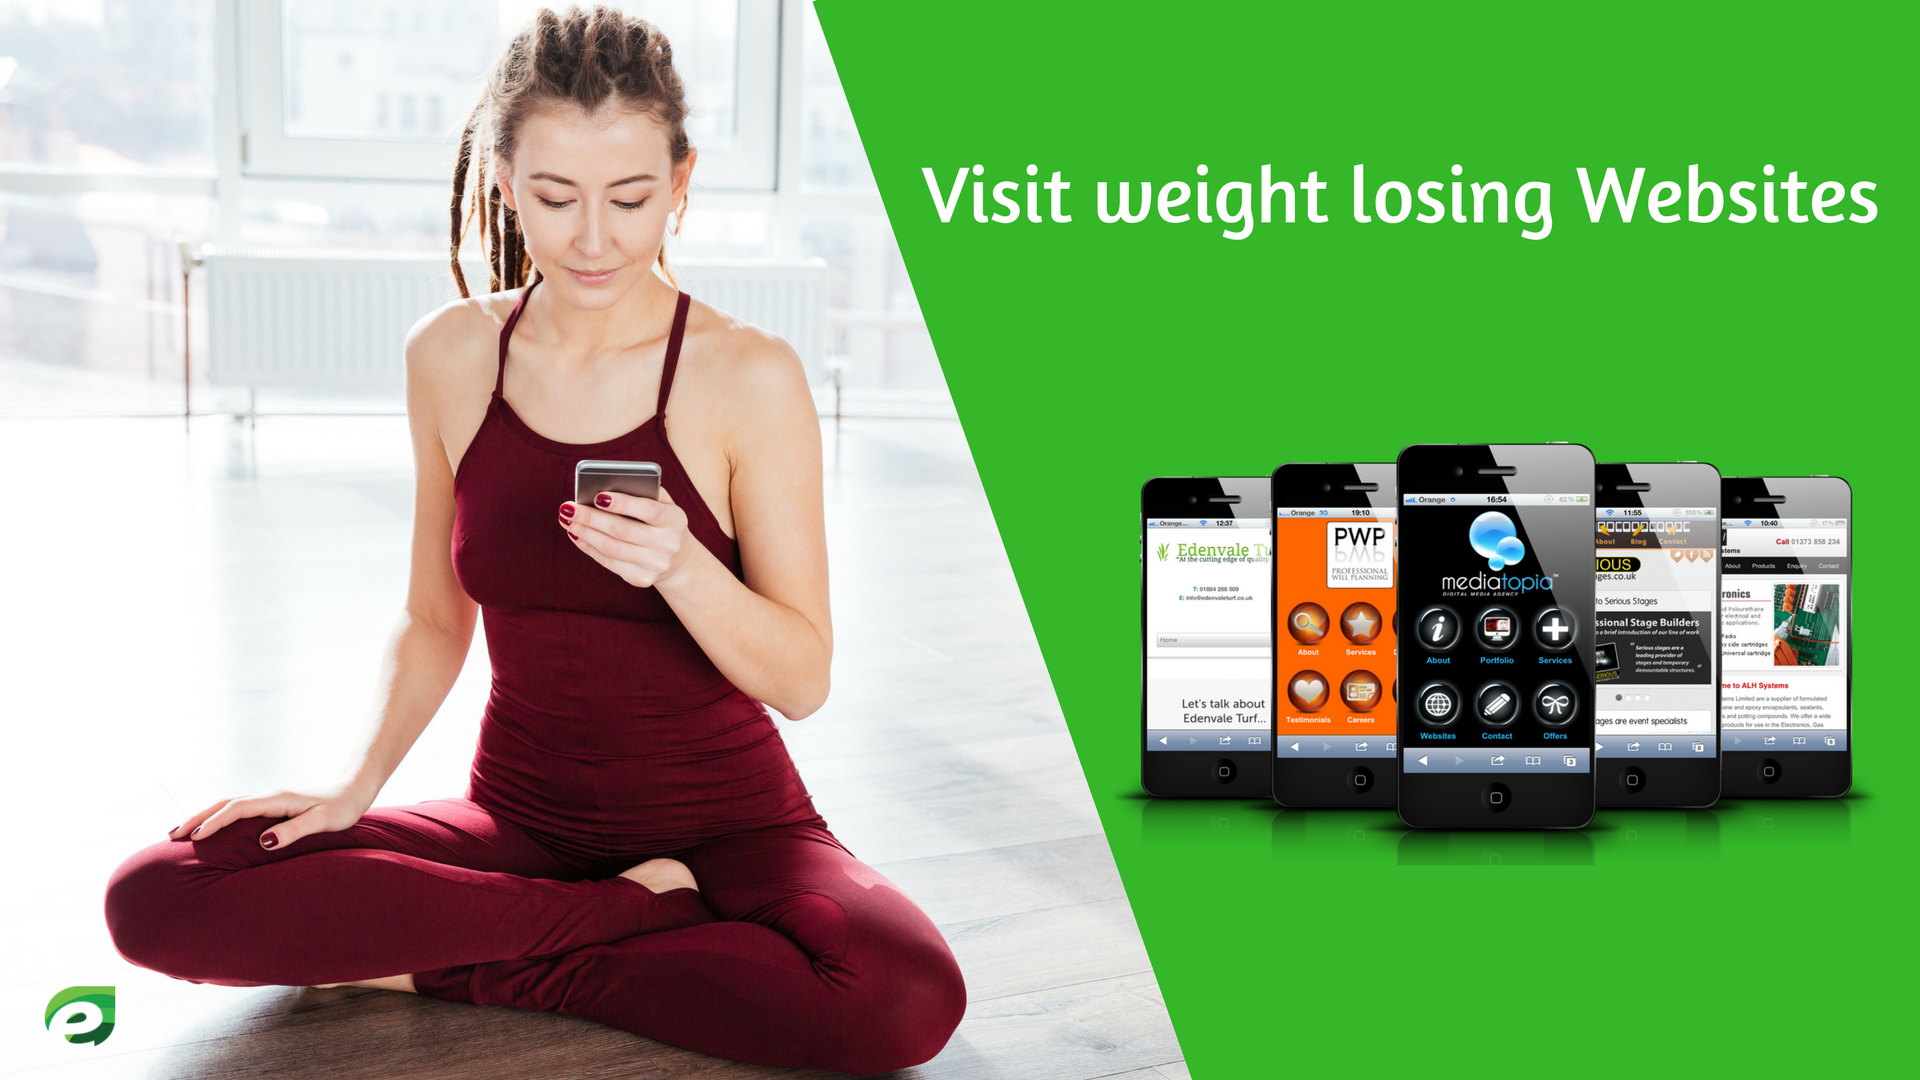 Visit websites - Lose Weight using Phone